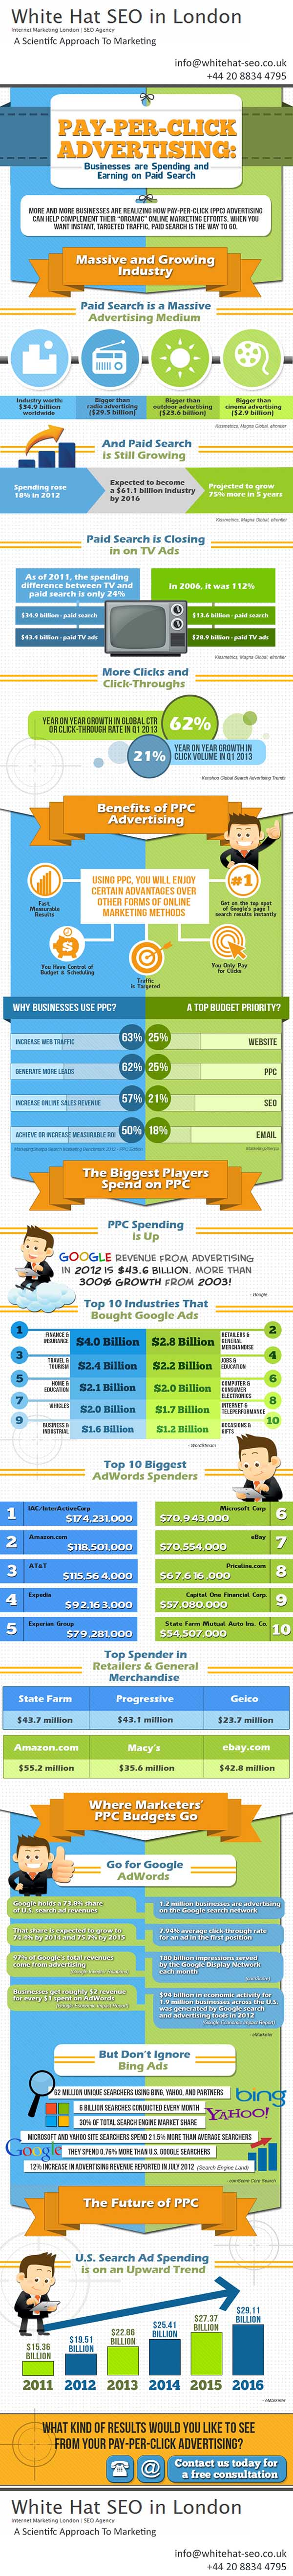 Infographic: Why do you need PPC management